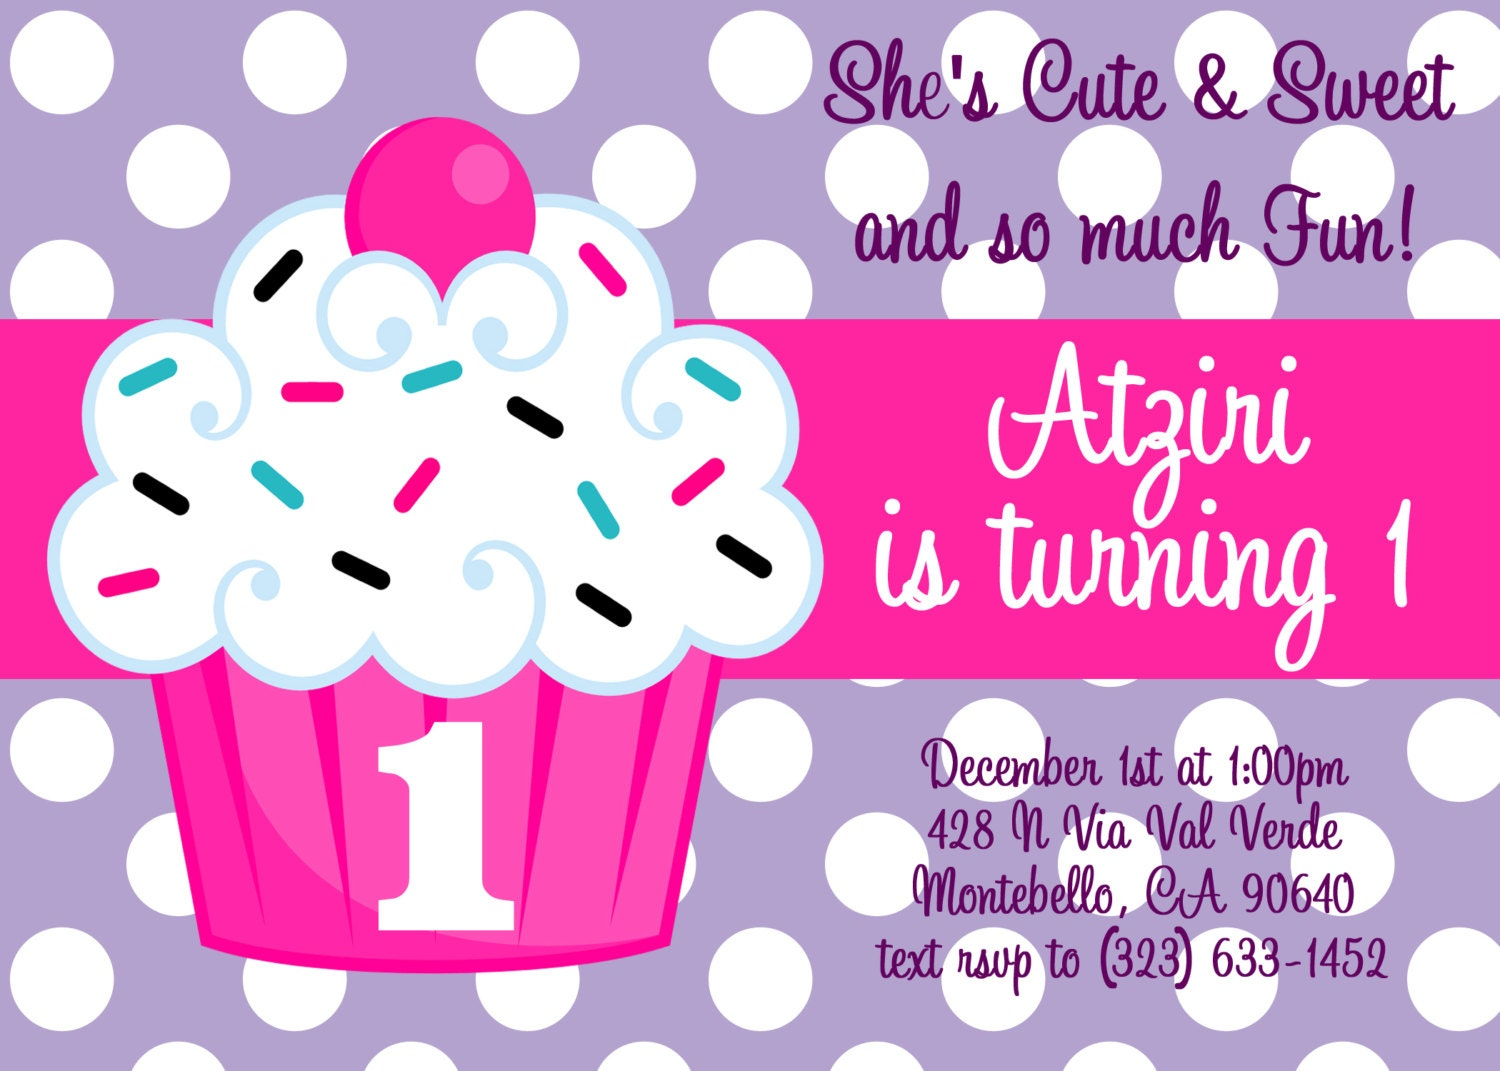 Sip And Shop Invitation was best invitations template